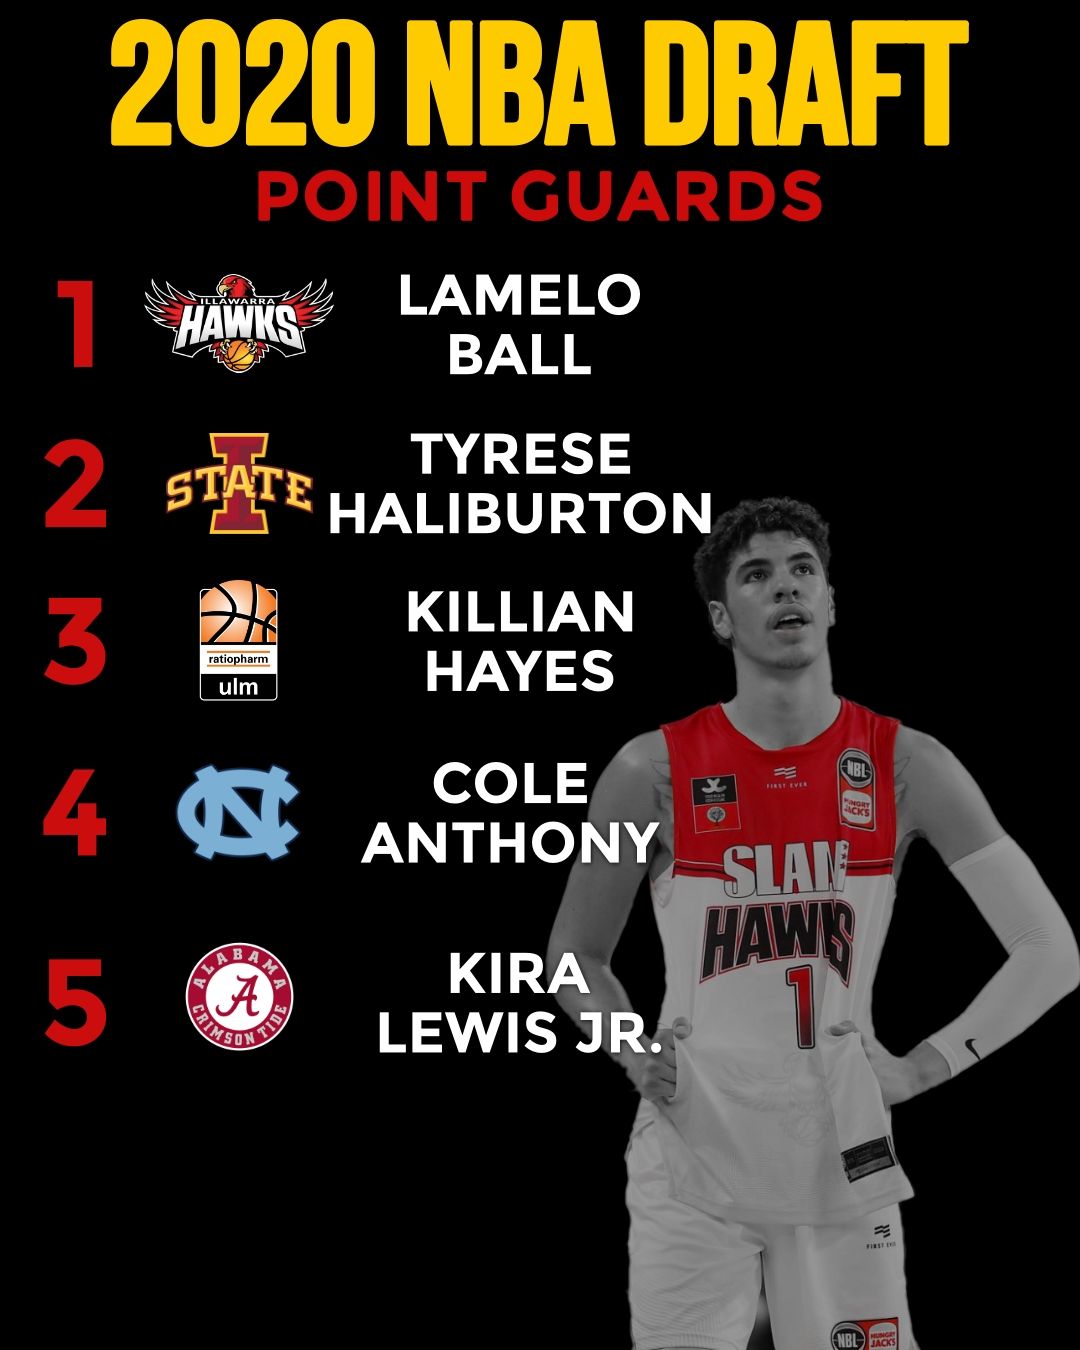 Top 5 Point Guards